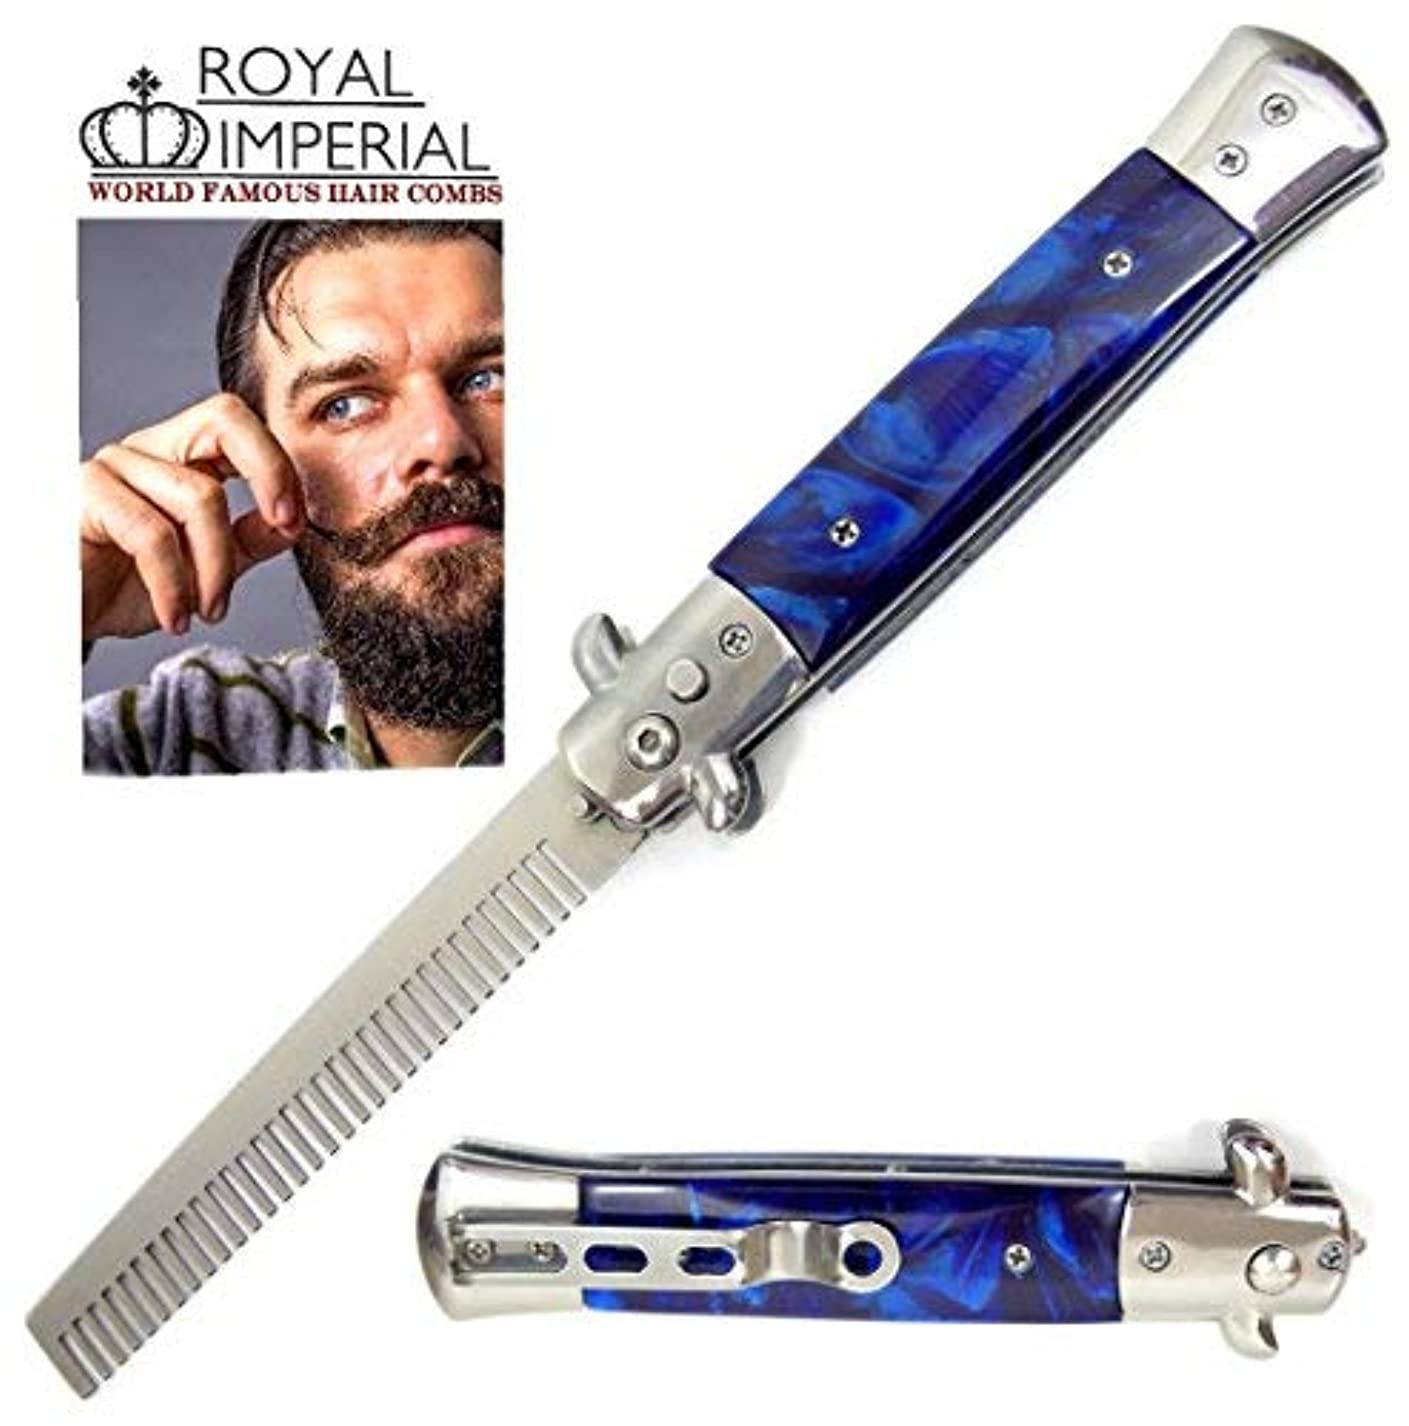 オーストラリア人制限する無実Royal Imperial Metal Switchblade Pocket Folding Flick Hair Comb For Beard, Mustache, Head BLUE CYCLONE Handle...